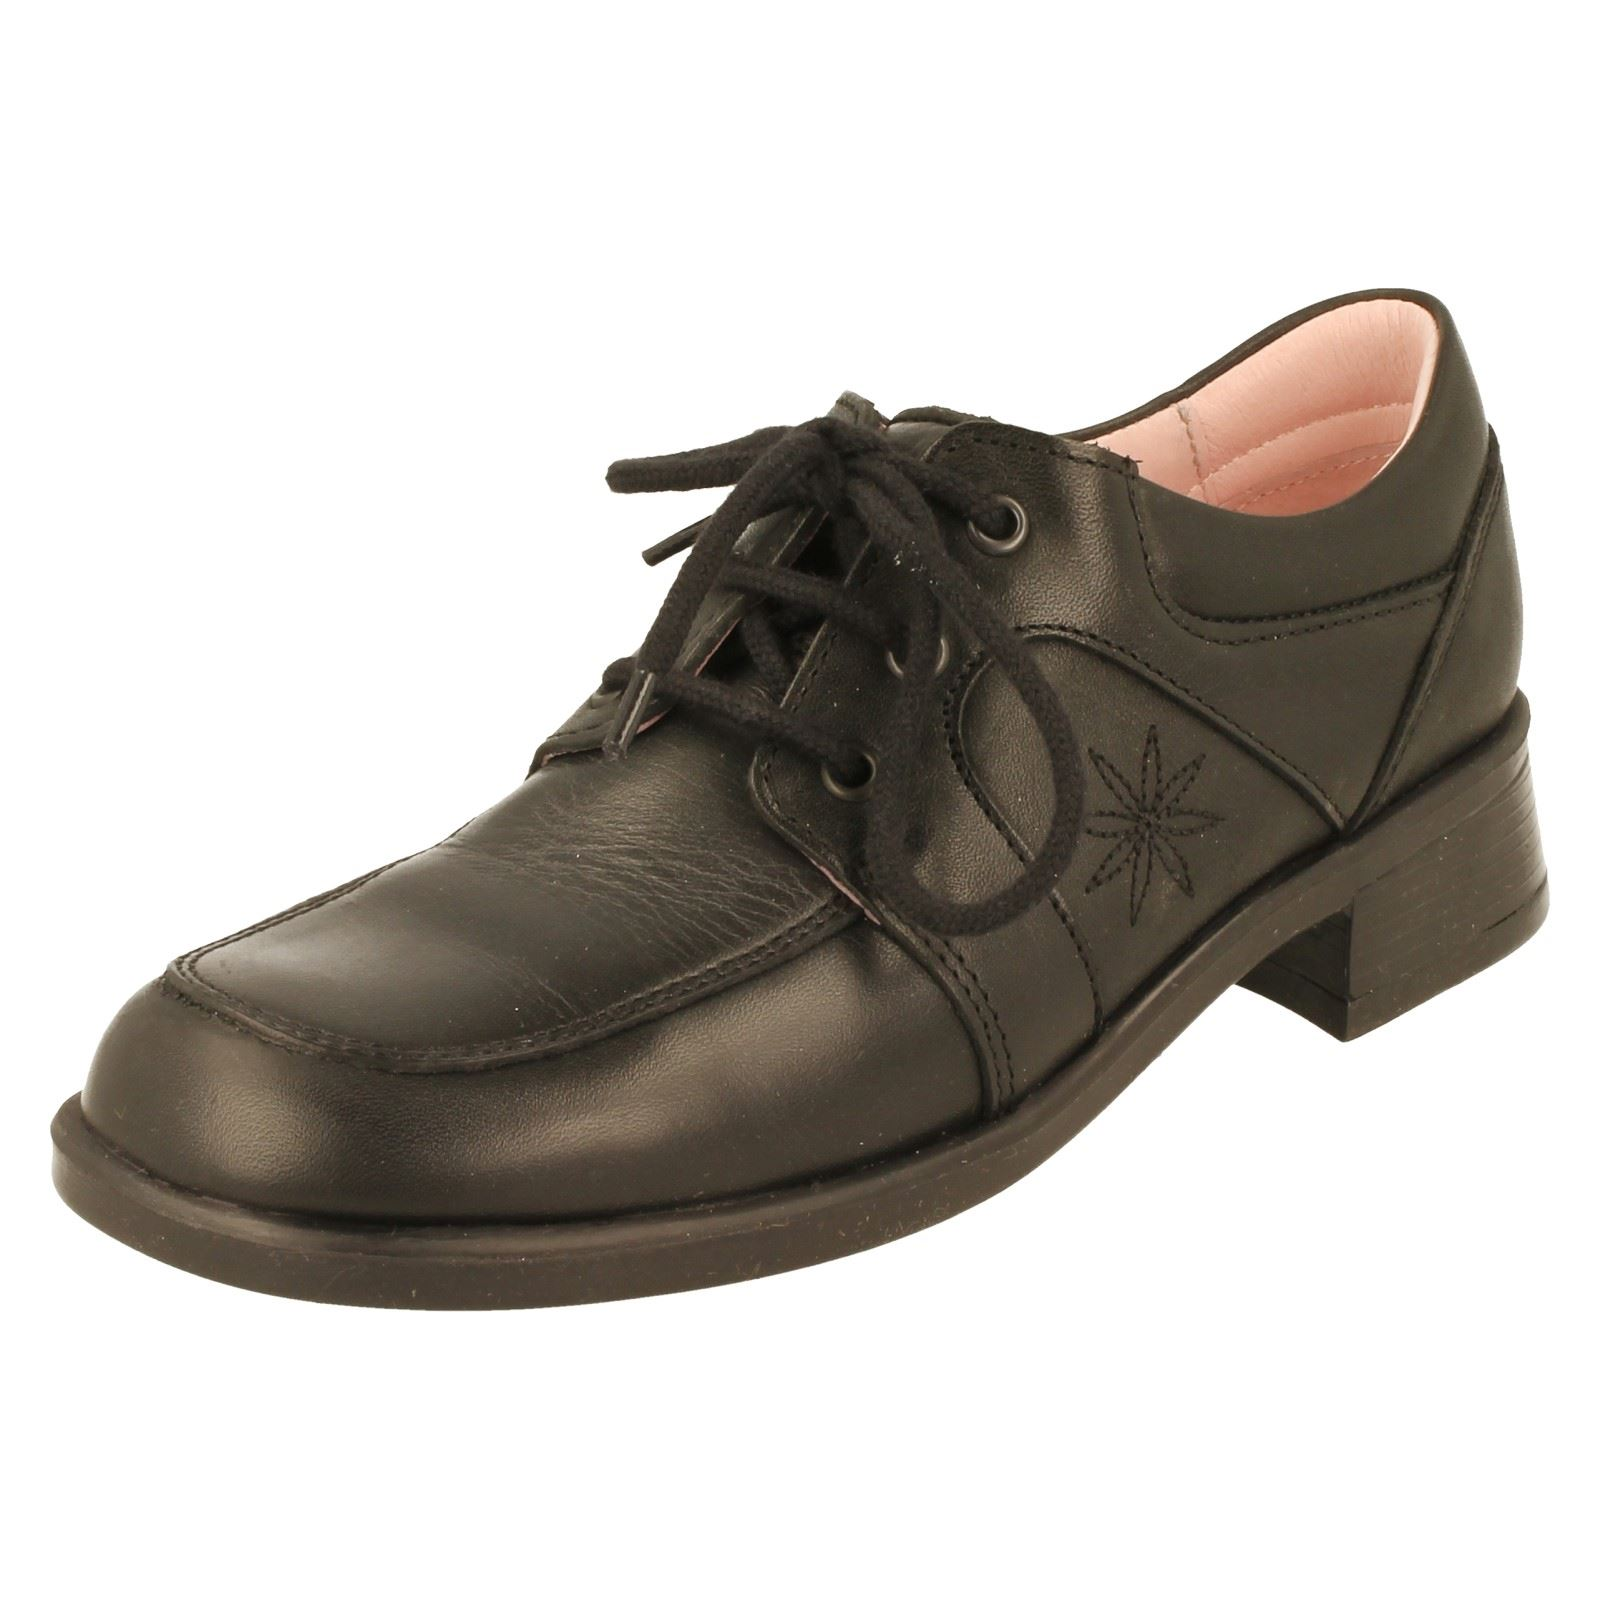 Girls Start Rite Formal/School Shoes The Style Charm -W